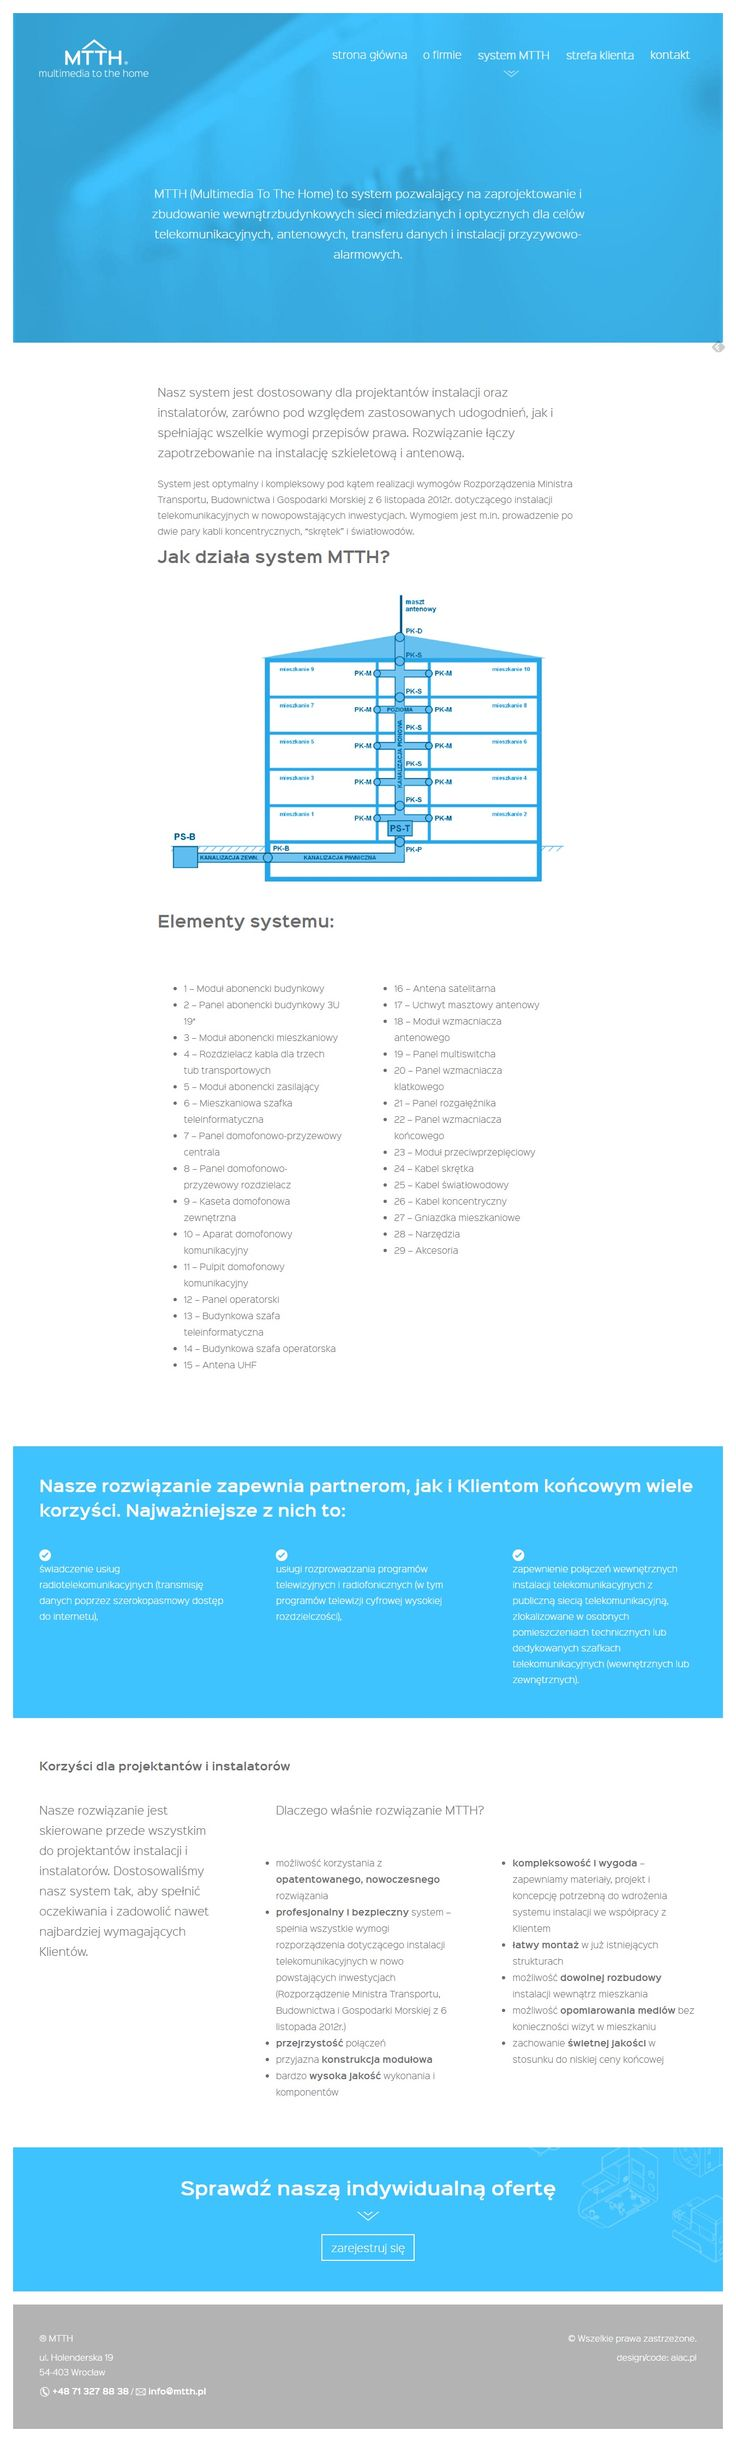 AIAC Agency for MttH (multimedia to the home) | mtth.pl | aiac.pl | #webdesign #website #graphicdesign #neonblue #bluewebsite #www #aiac